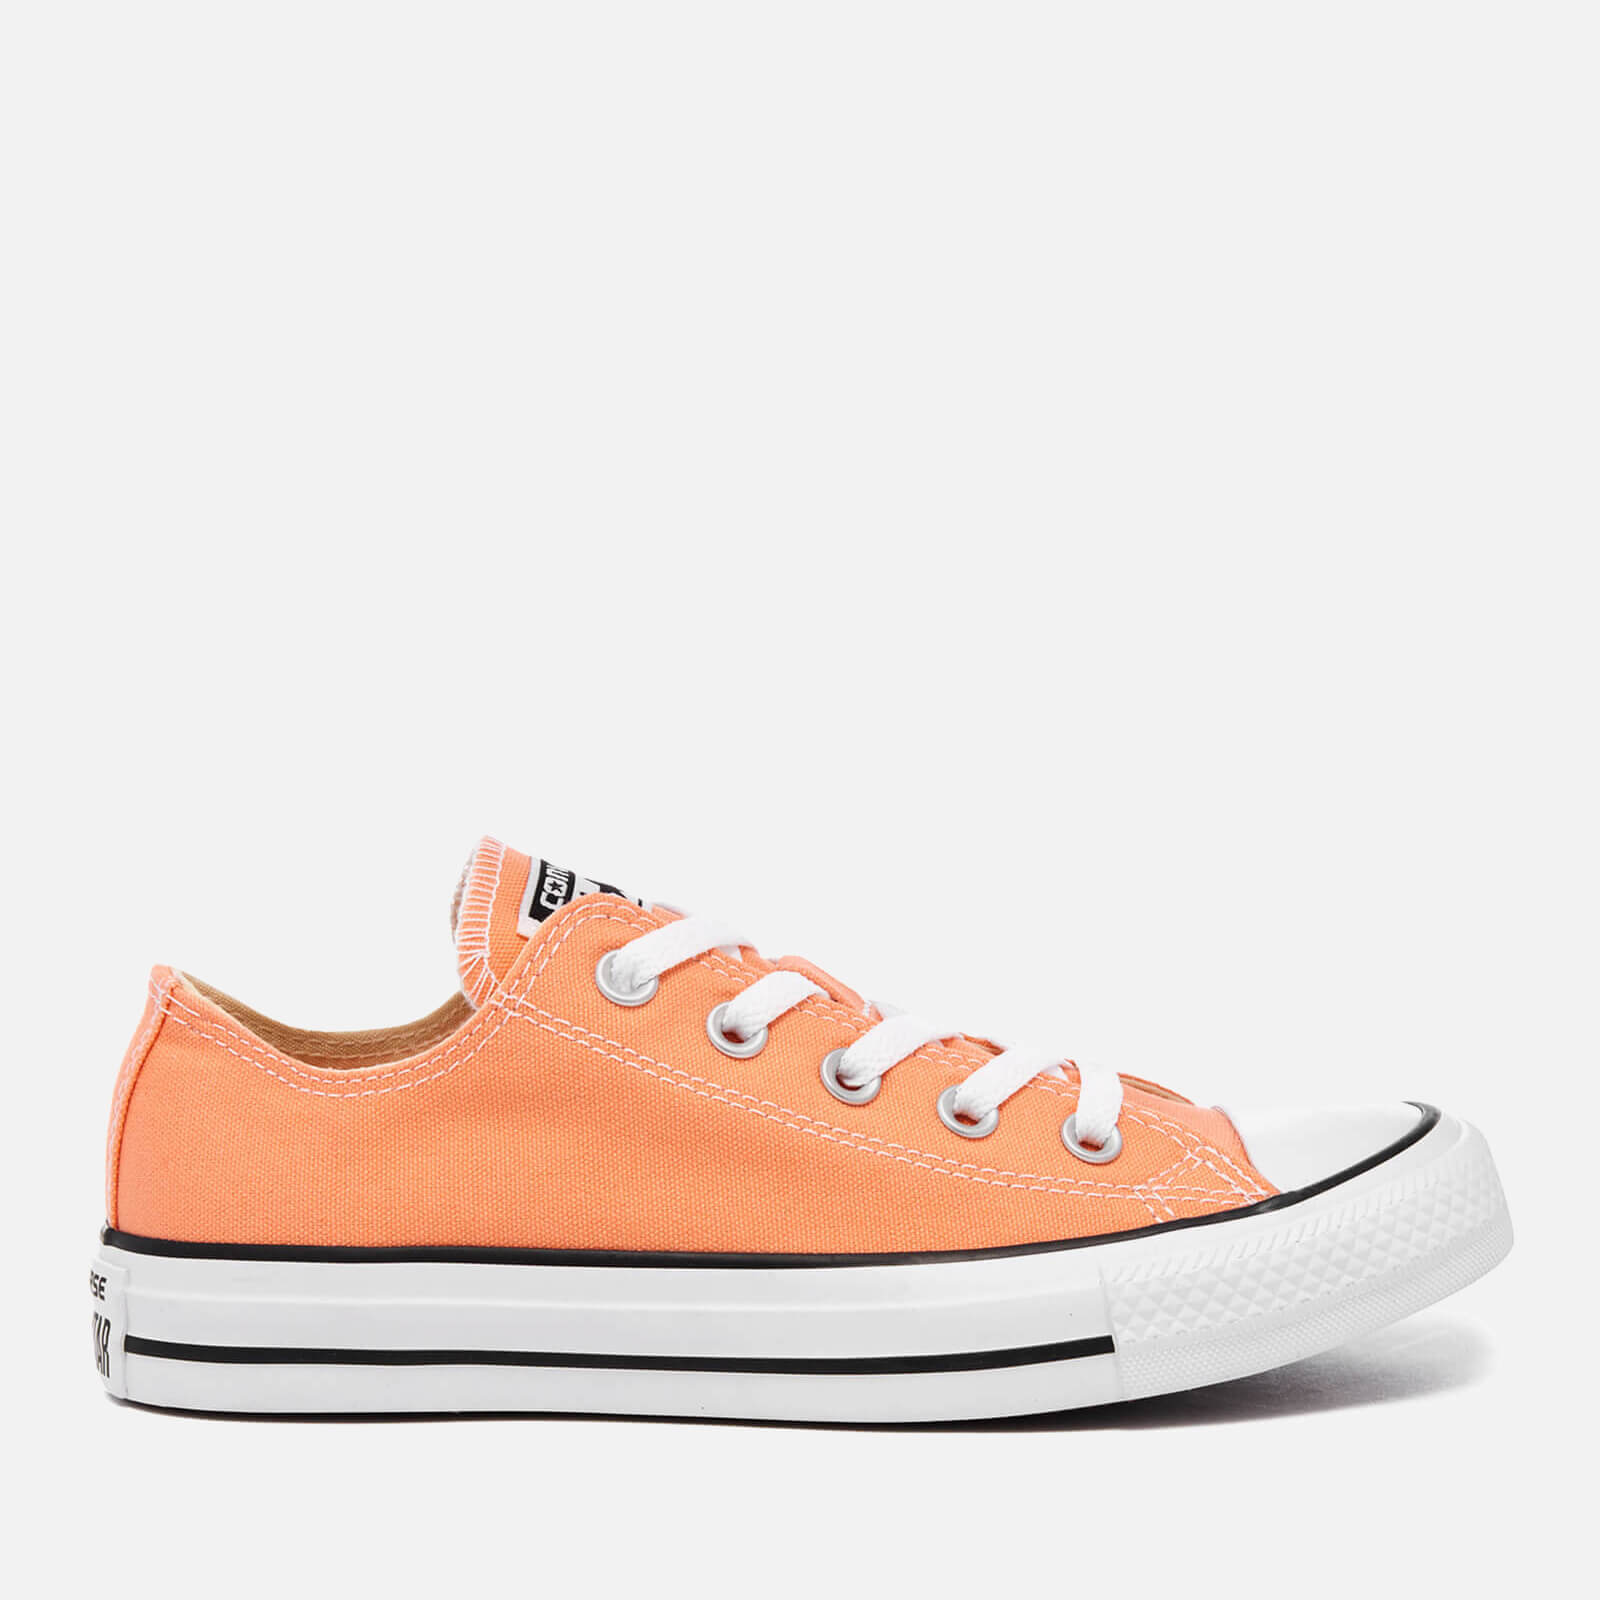 e5168fcd8805 Converse Women s Chuck Taylor All Star Ox Trainers - Sunset Glow ...